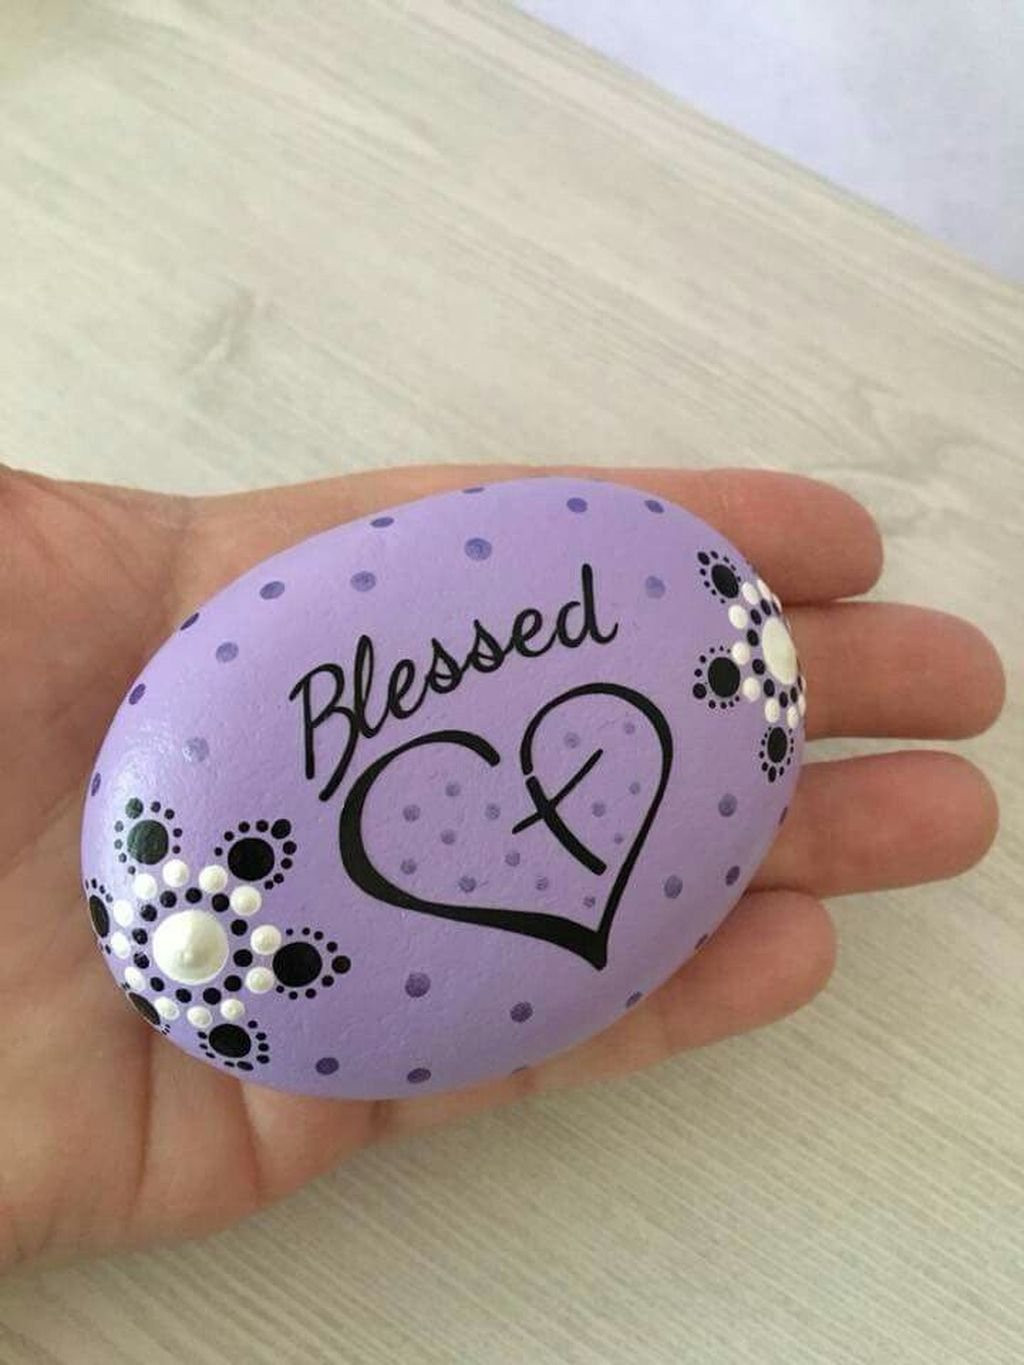 Affordable Diy Painted Rock Ideas For Home Decoration 28